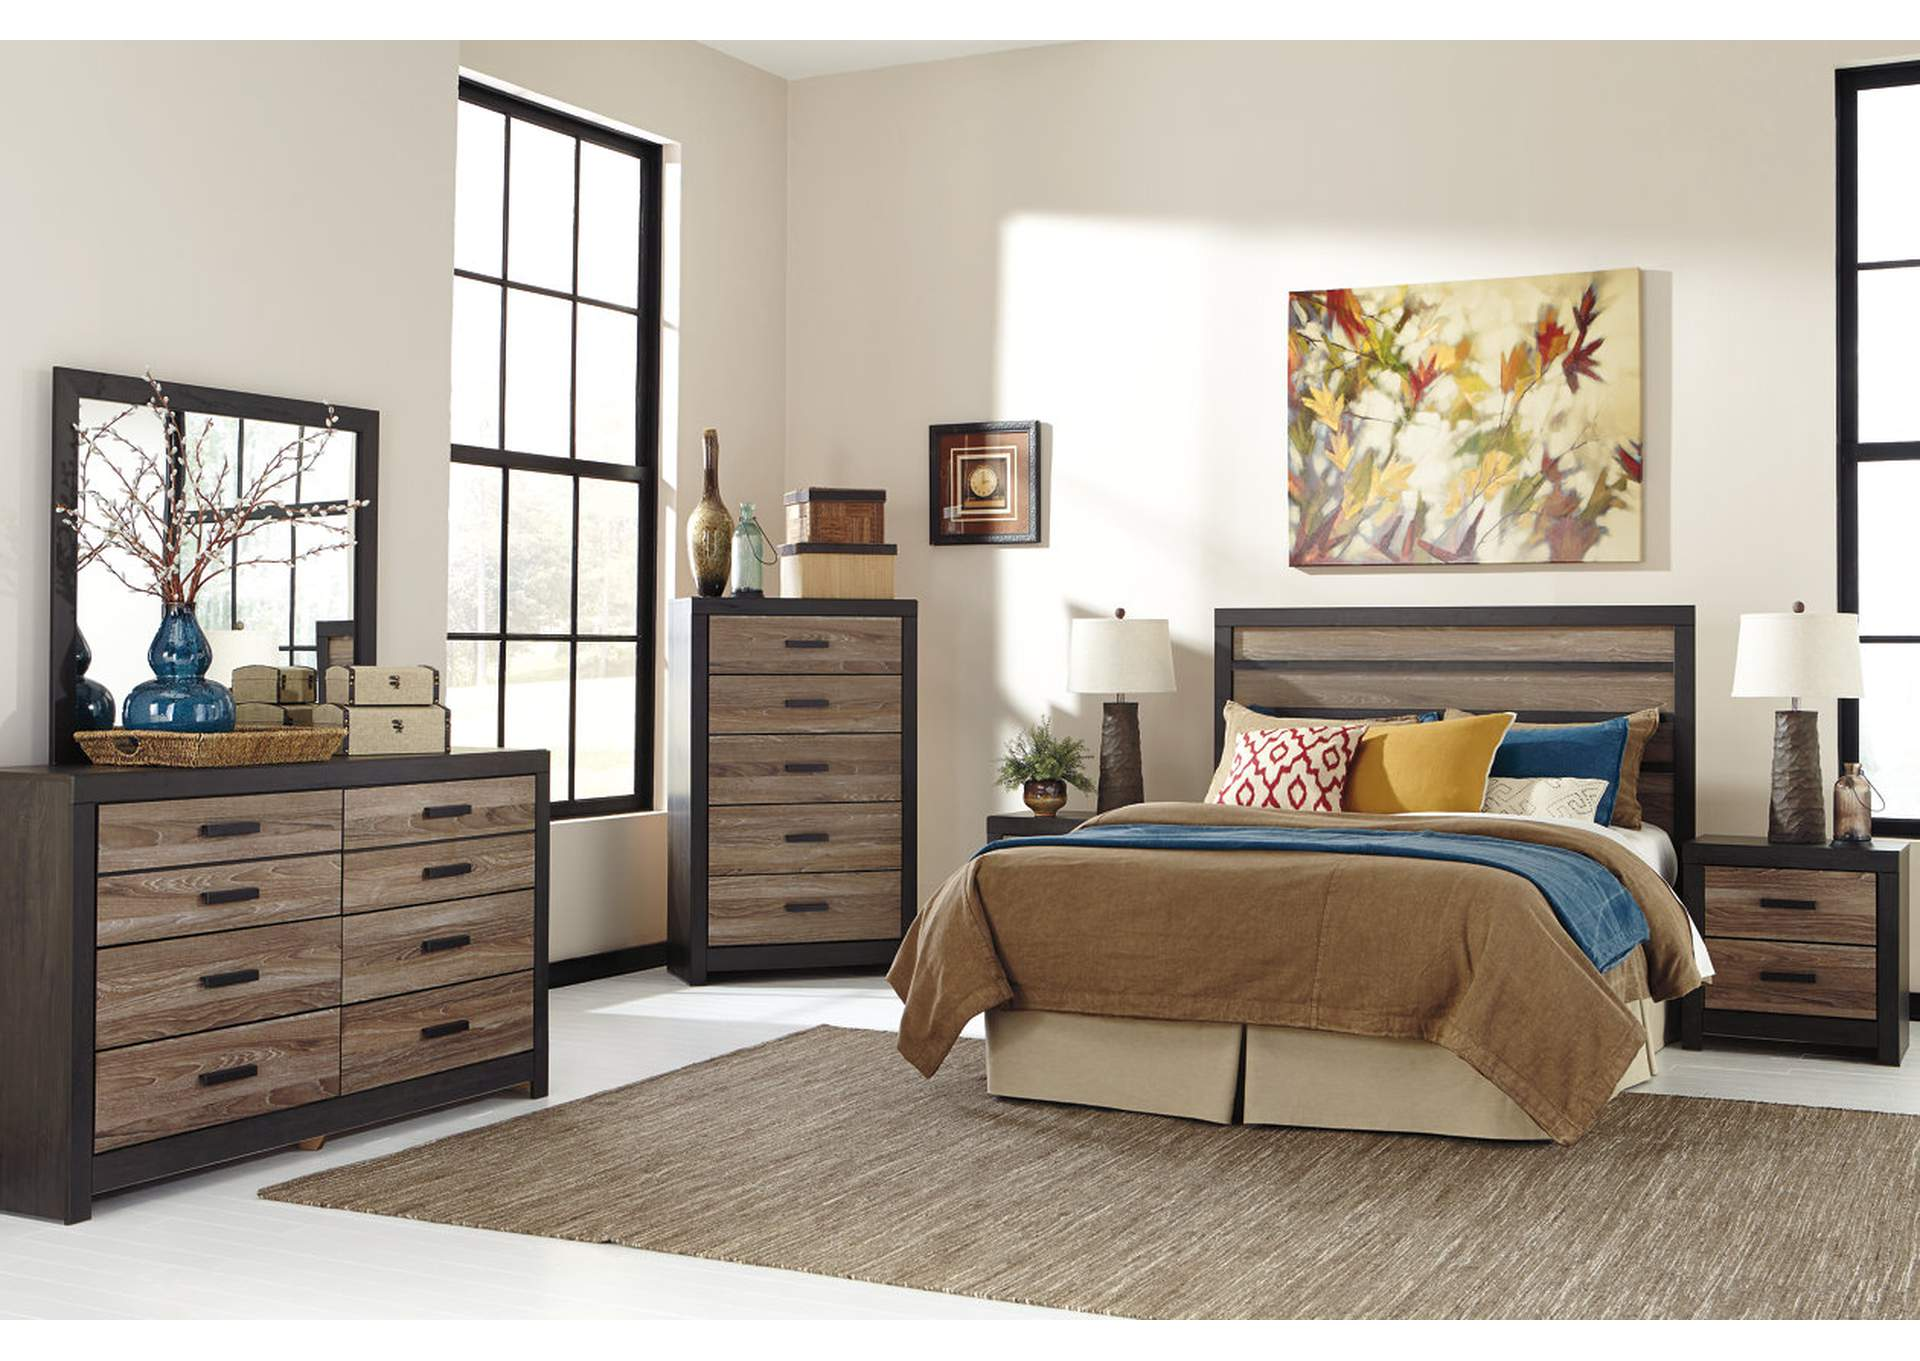 Harlinton King Panel Headboard w/Dresser, Mirror, Drawer Chest & Nightstand,Signature Design By Ashley